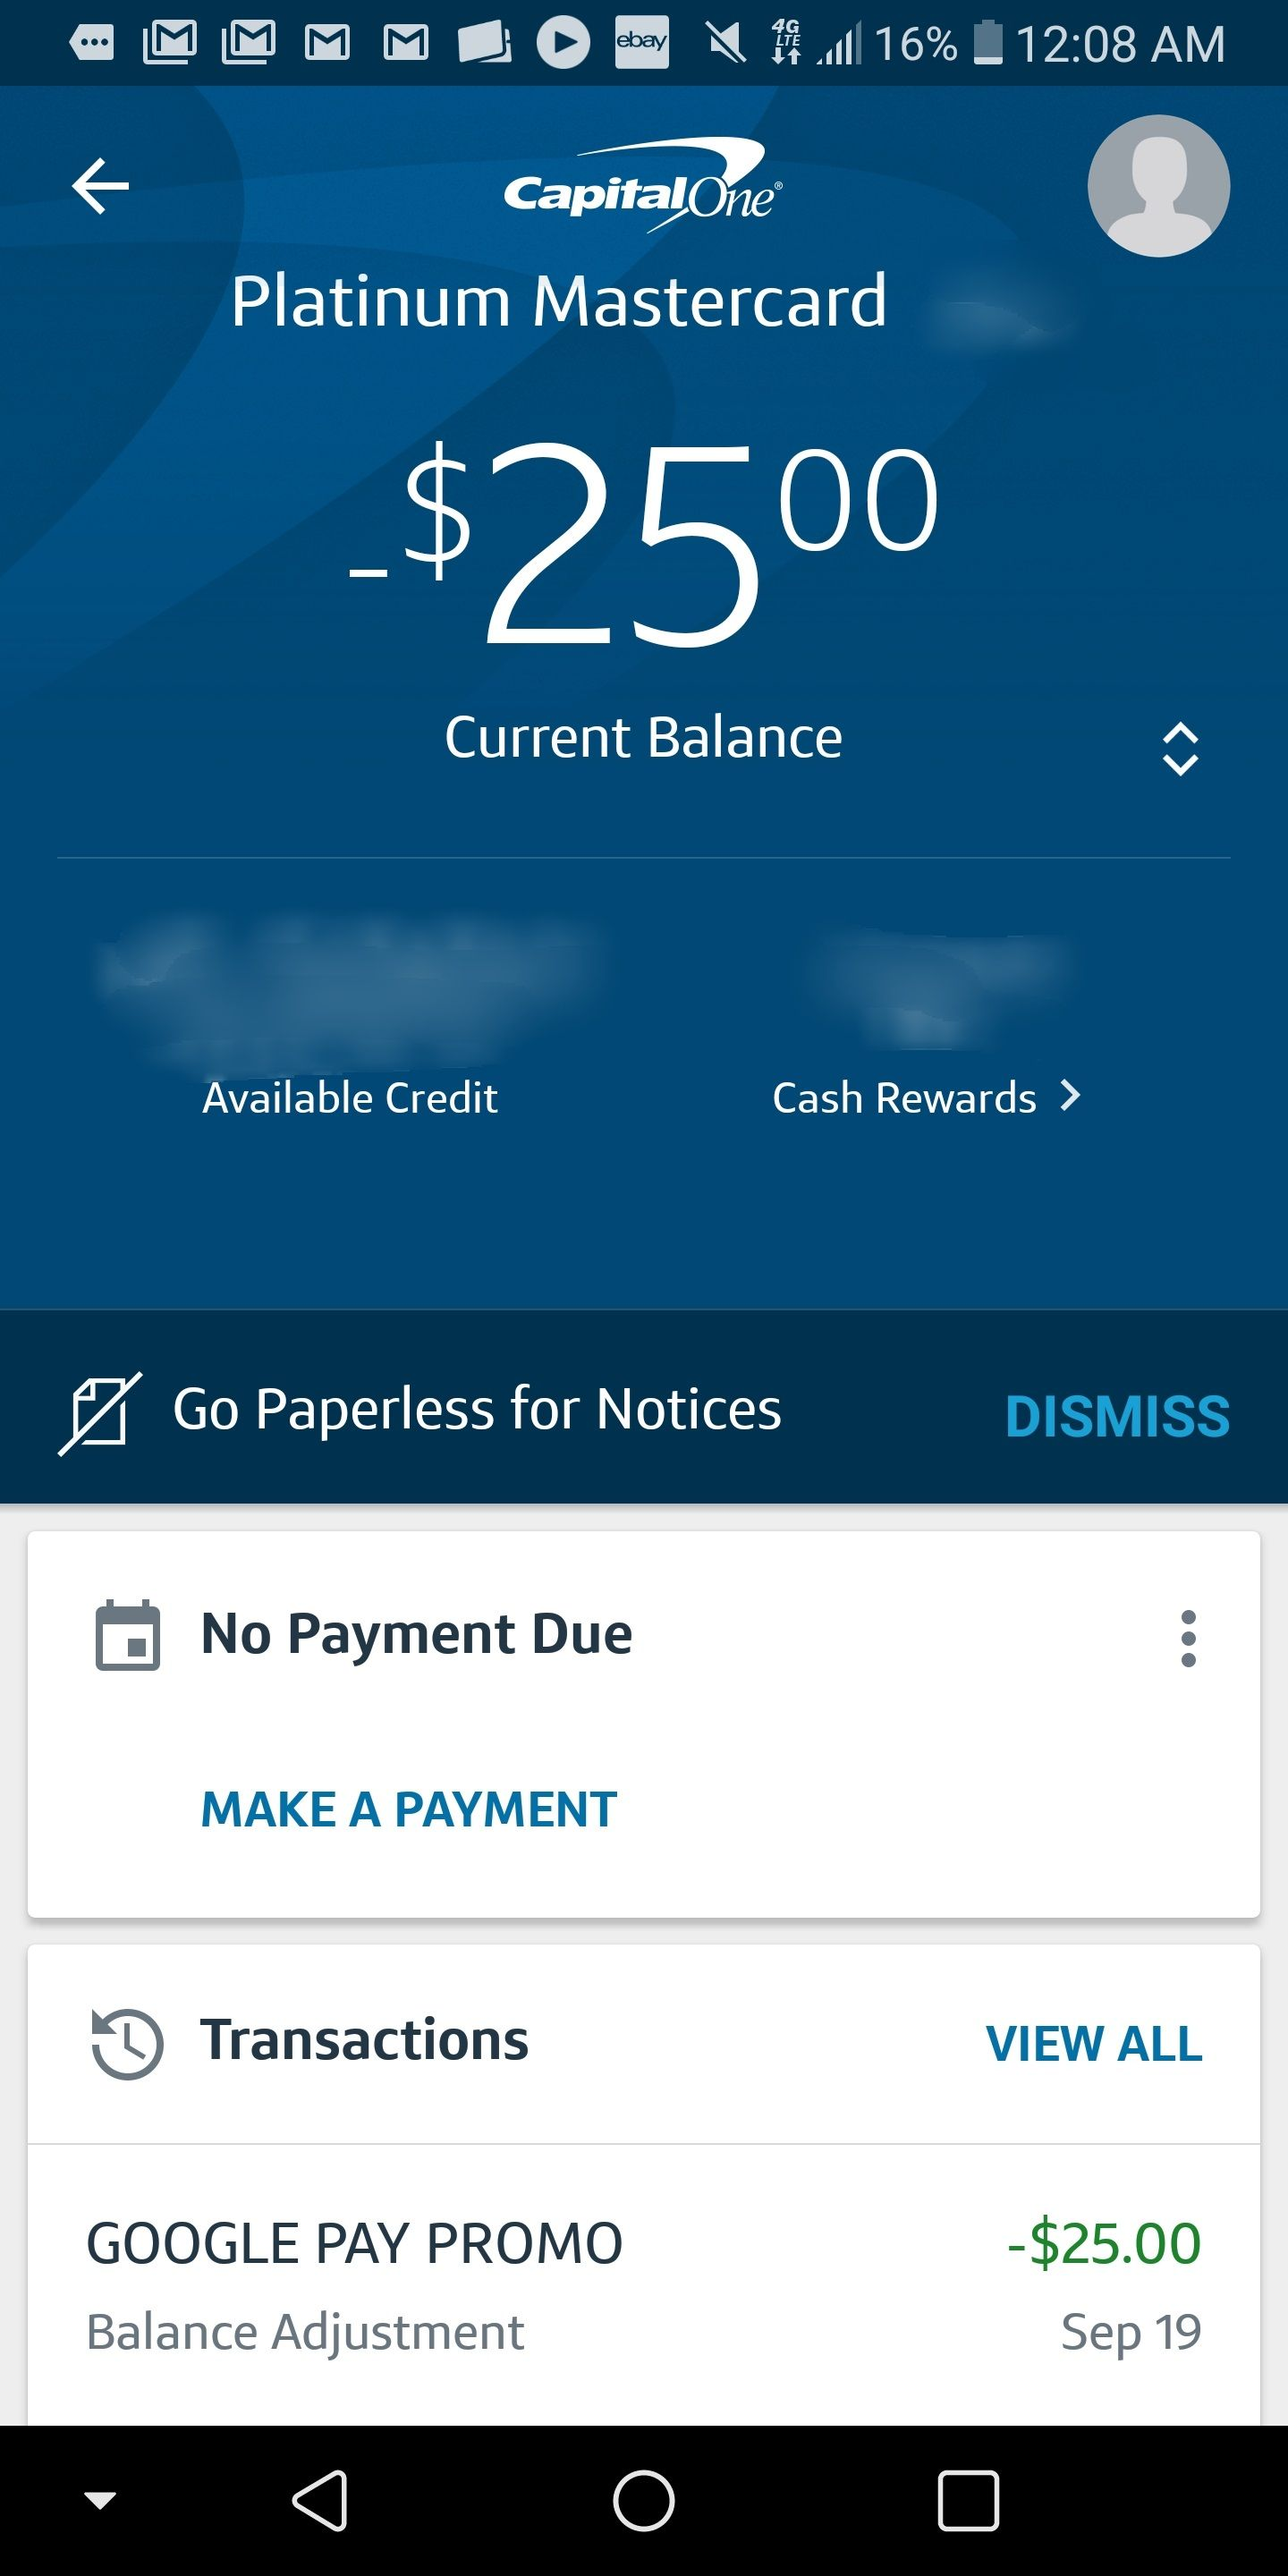 EXPIRED) Update, not targeted: Easy $9 statement credit for